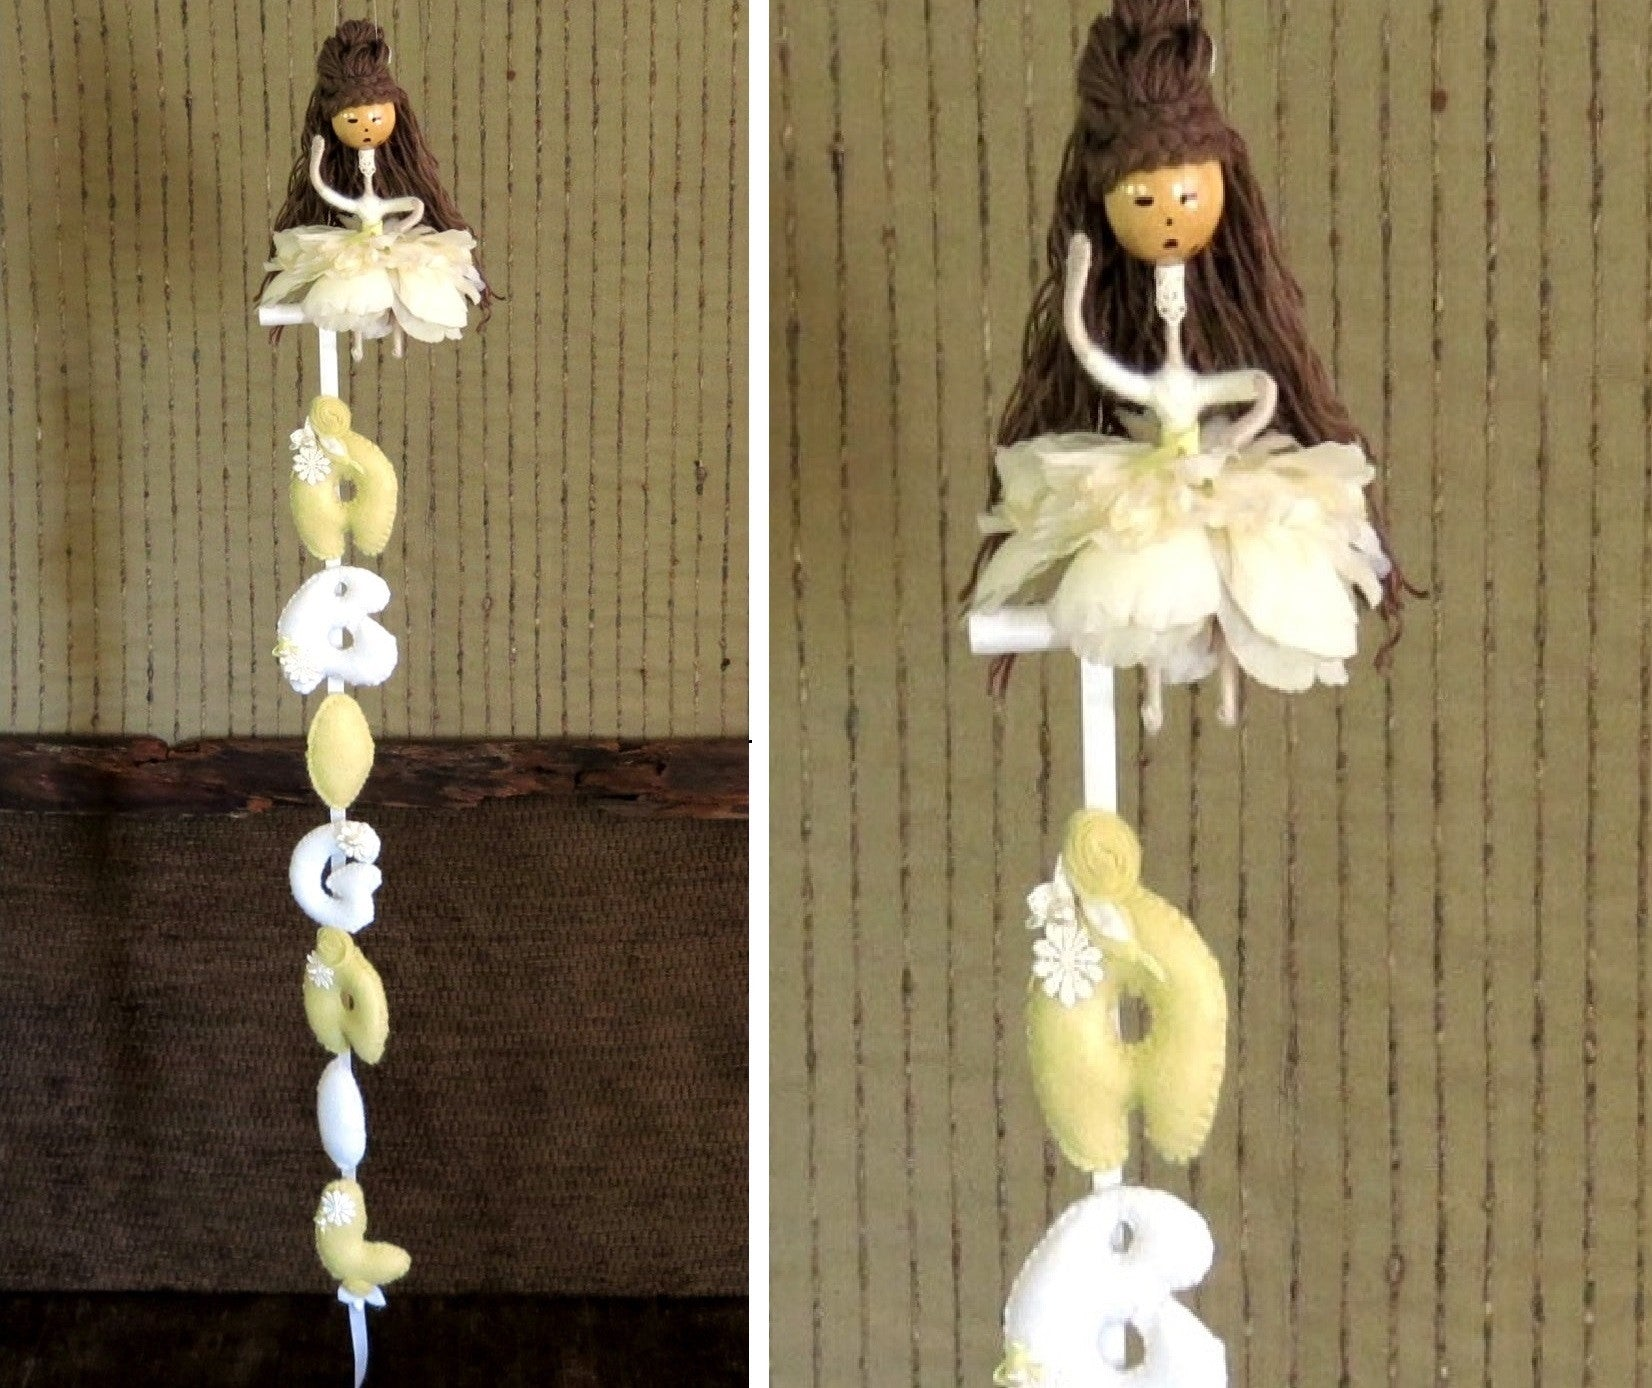 Flower-Doll-Personalized-Name-Bunting-Nchanted-Gifts